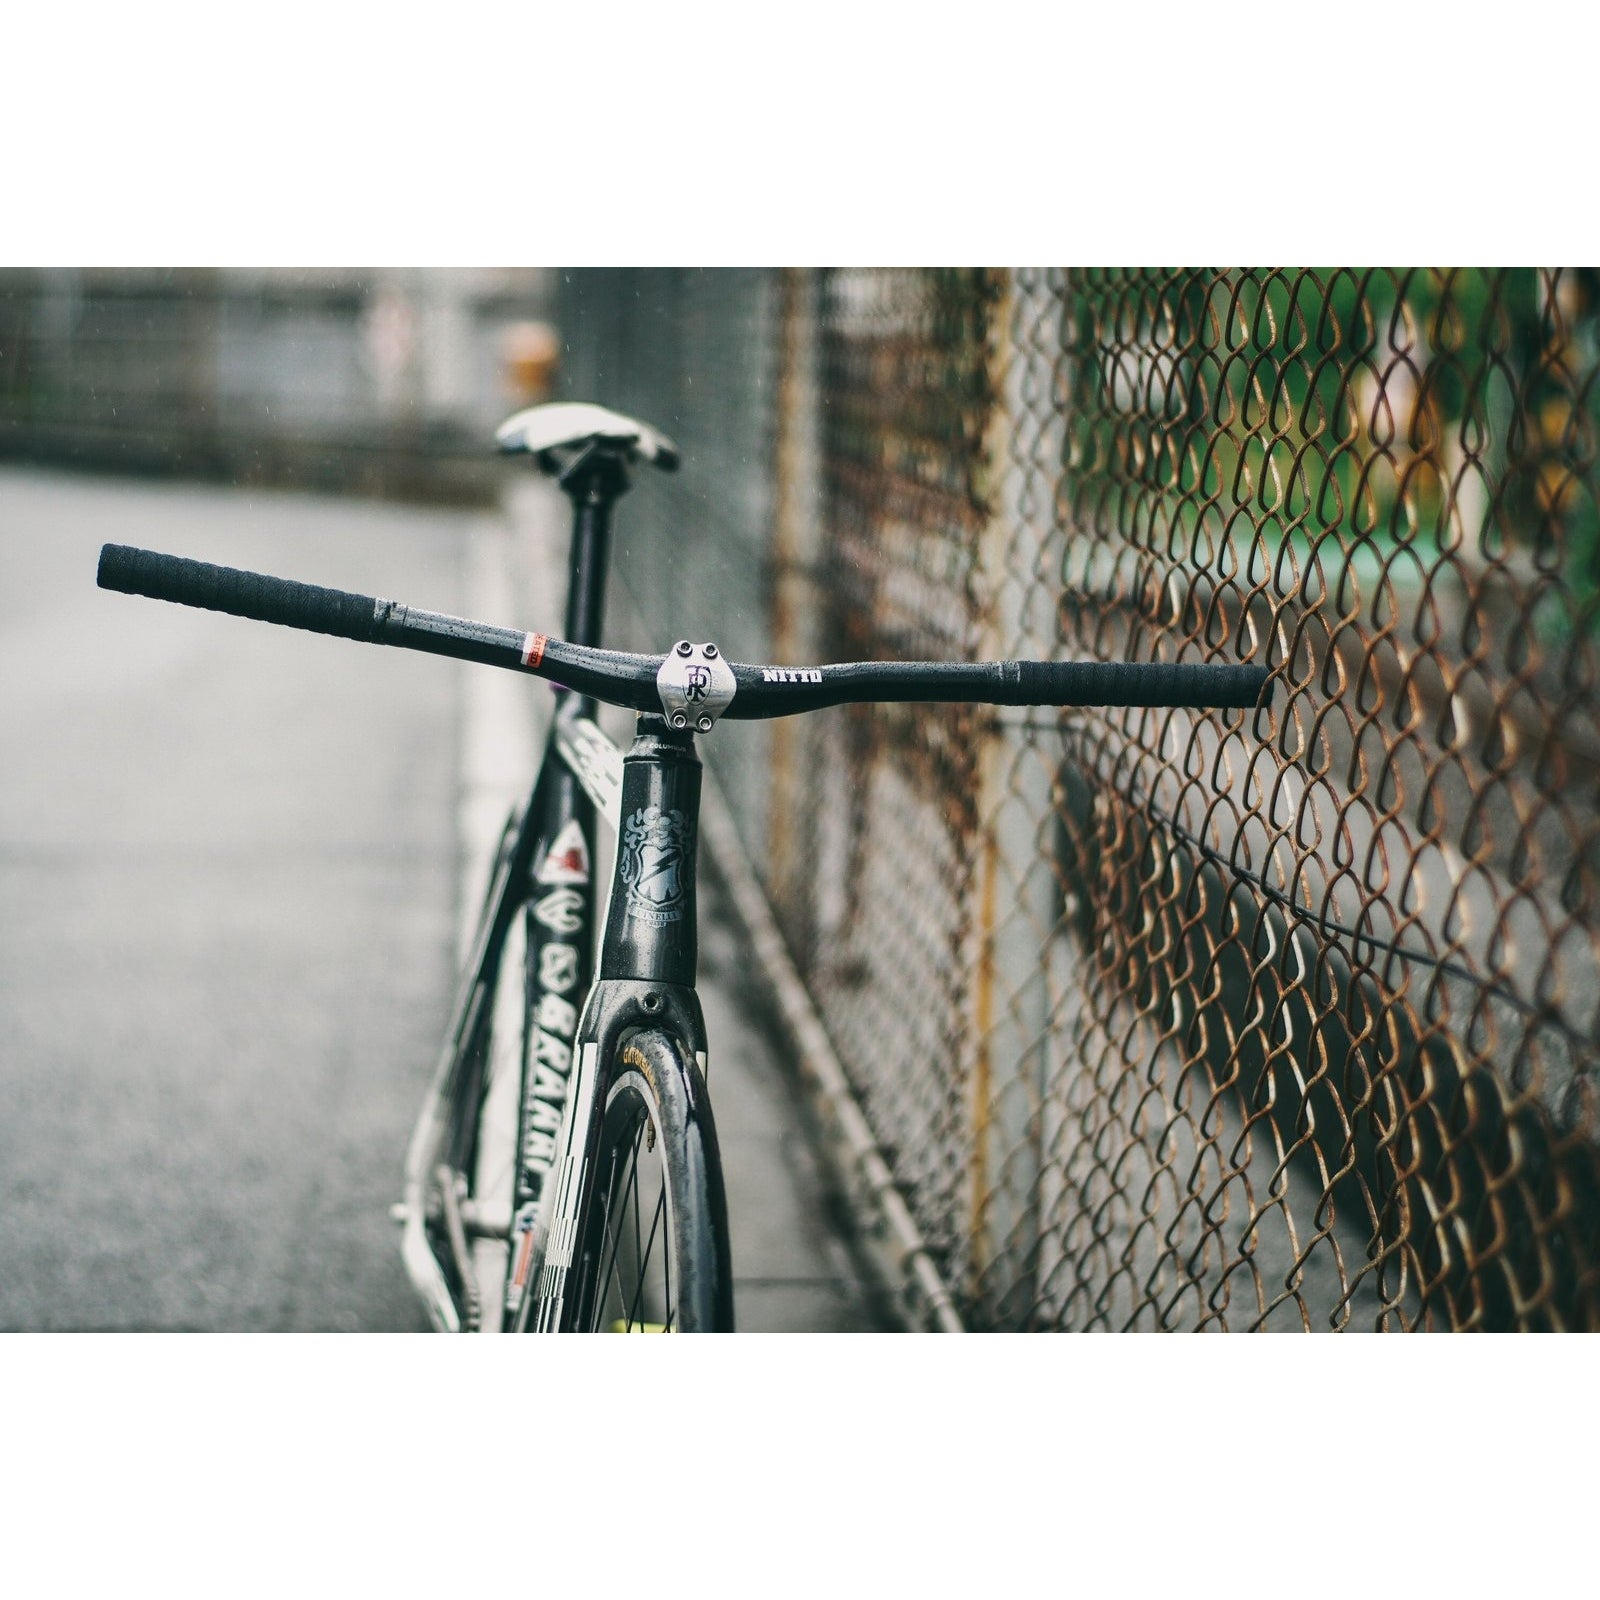 Fairweather For Shred Silver Mountain Flat Bars - Velo Orange